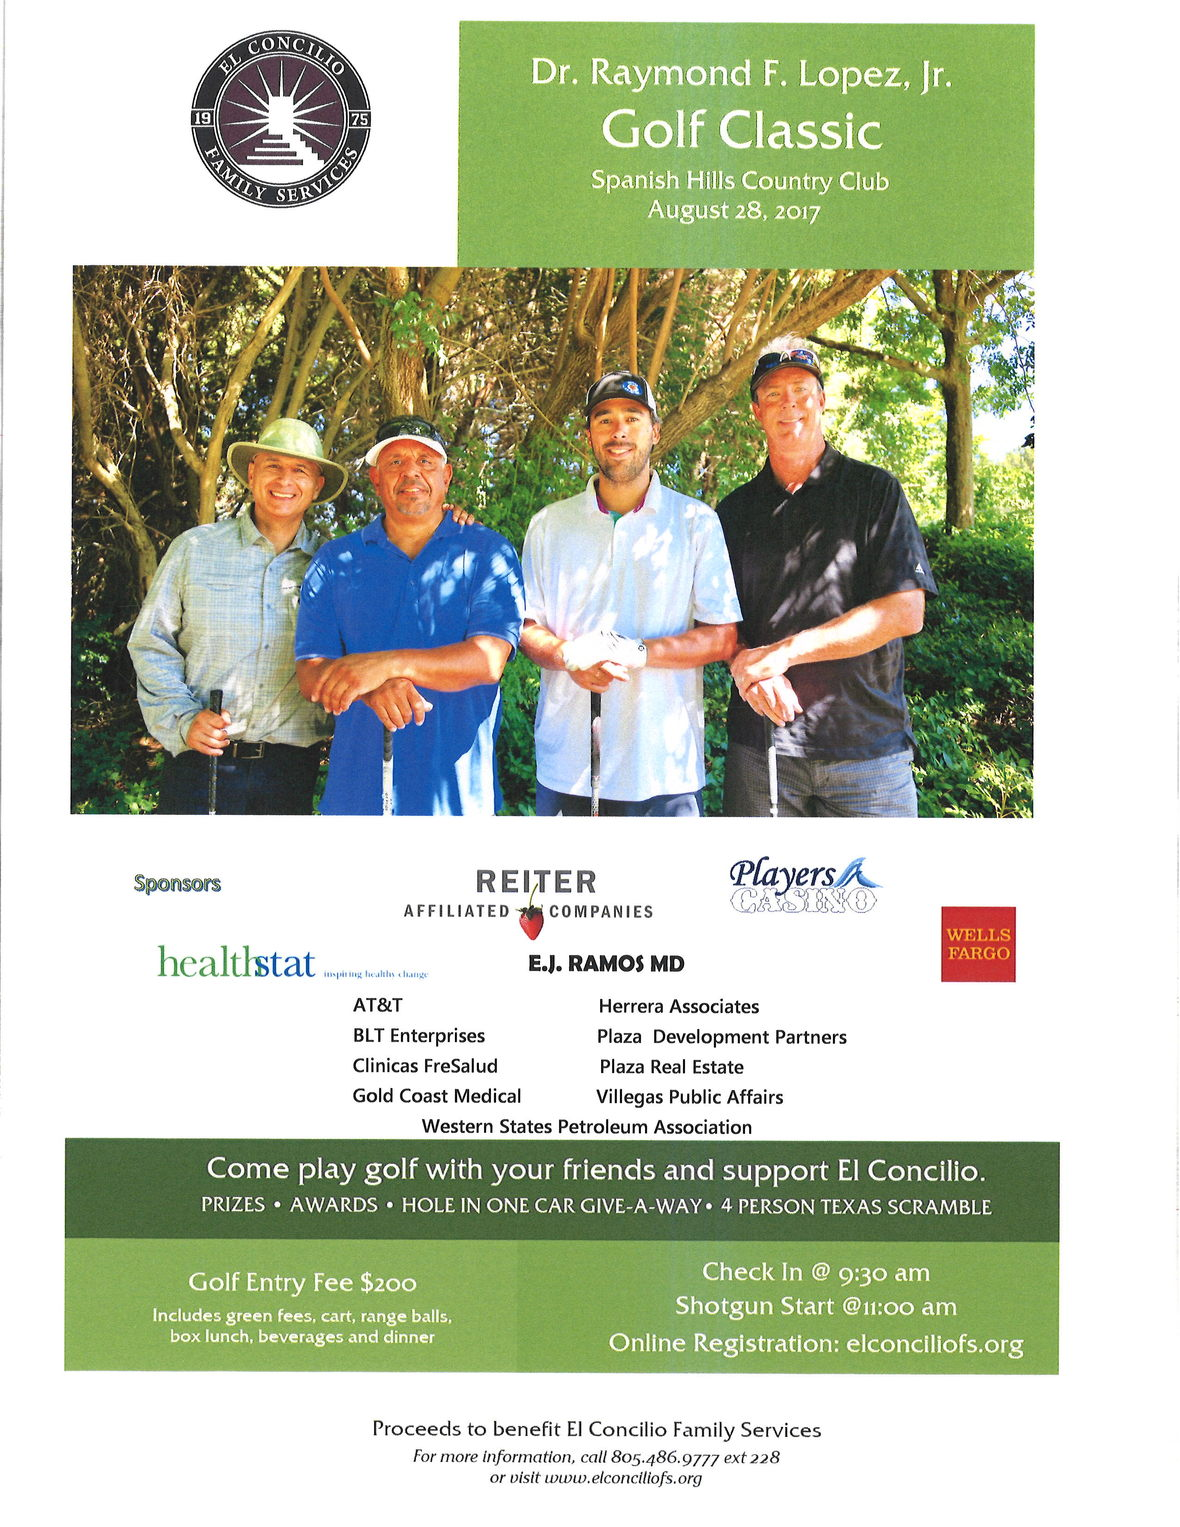 Aug. 28 — El Concilio Family Services to present the 'Dr. Raymond F. Lopez, Jr. Golf Classic'